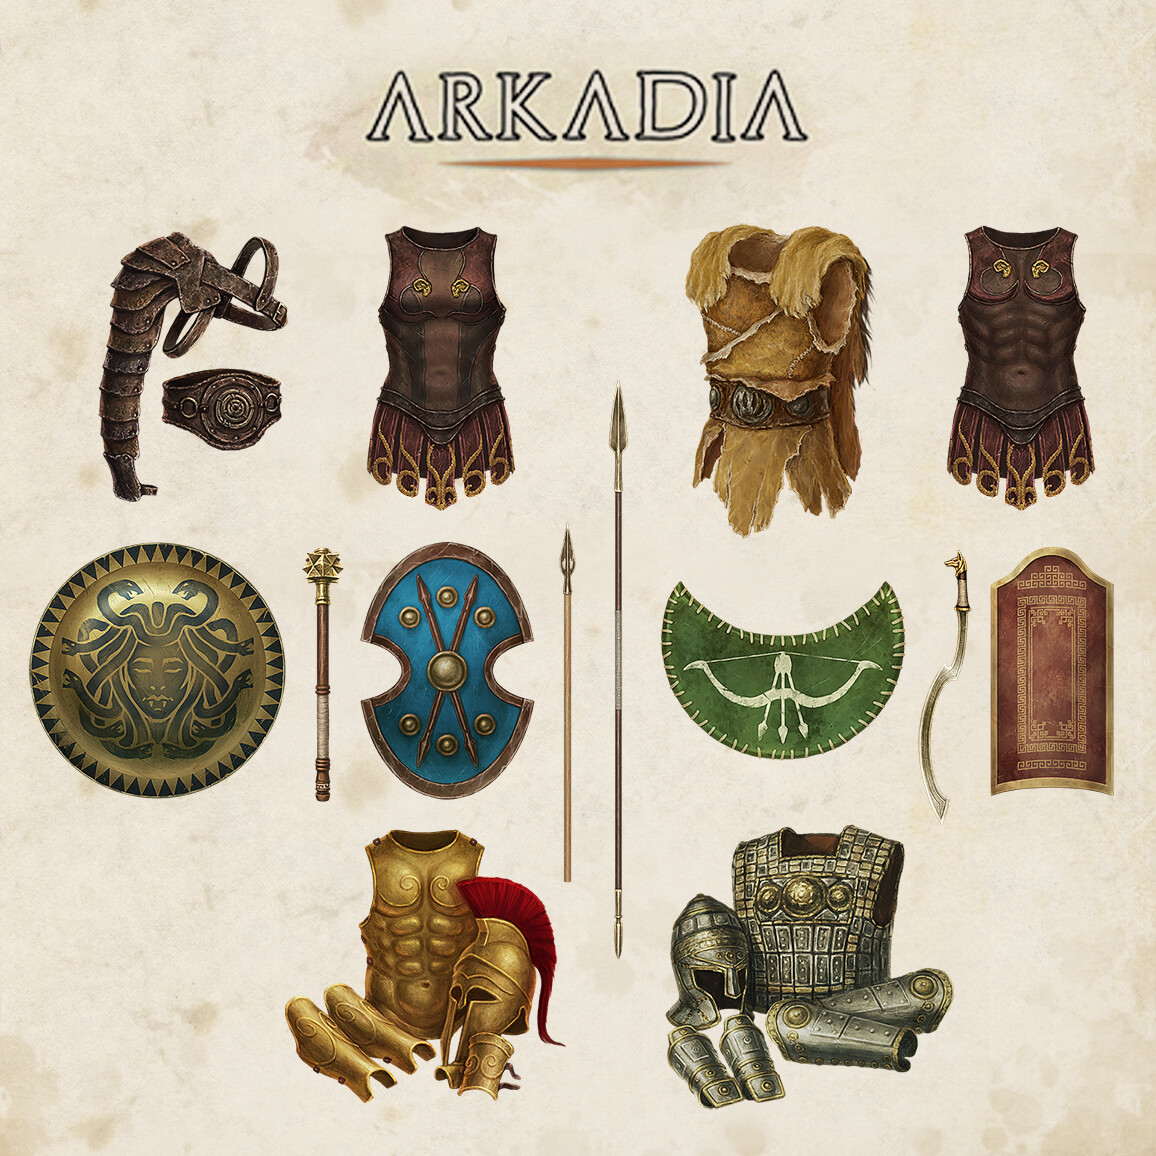 [ARKADIA] - Armors, Shields & Weapons